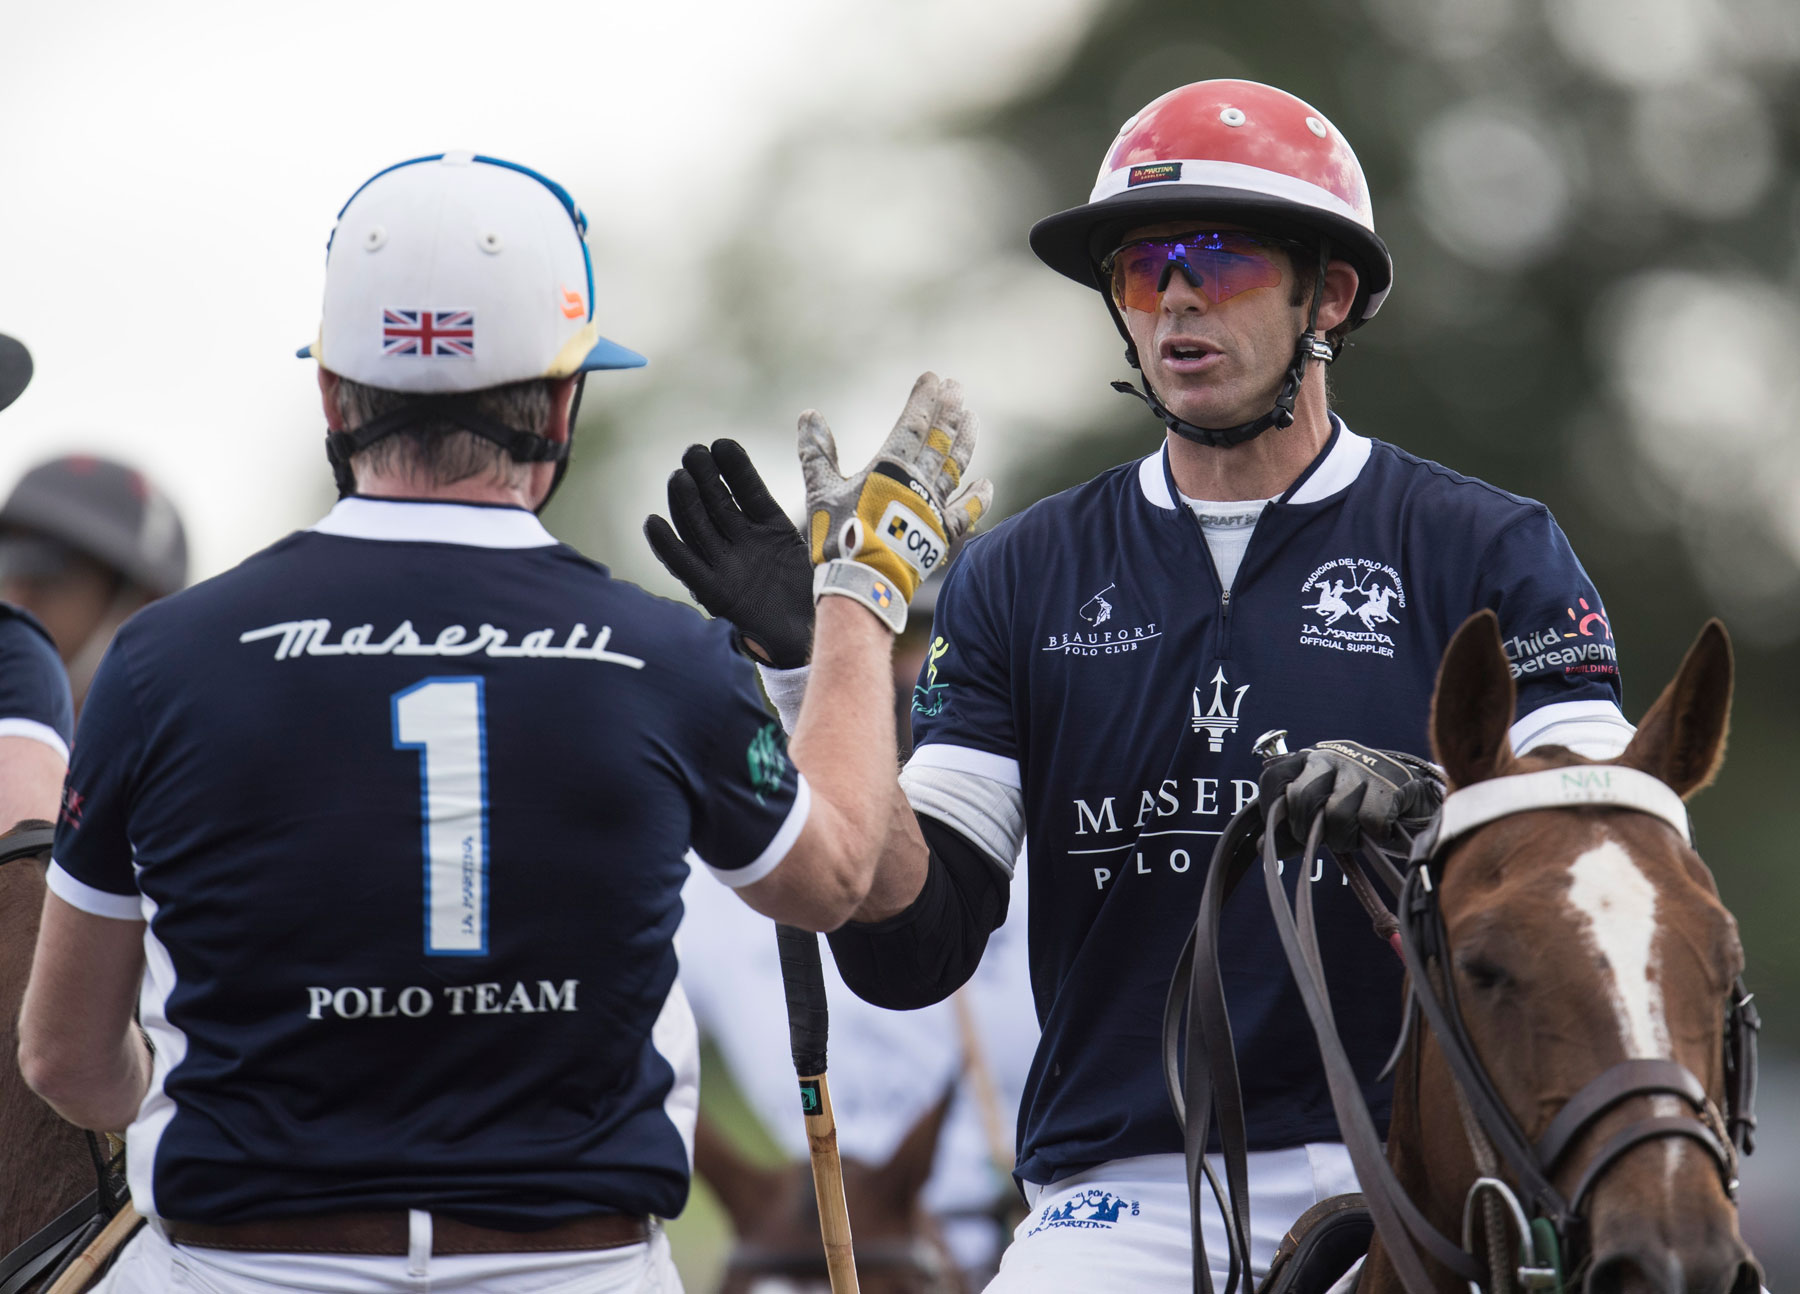 Dhamani 1969 Wins the UK round of Maserati's International Polo Tour